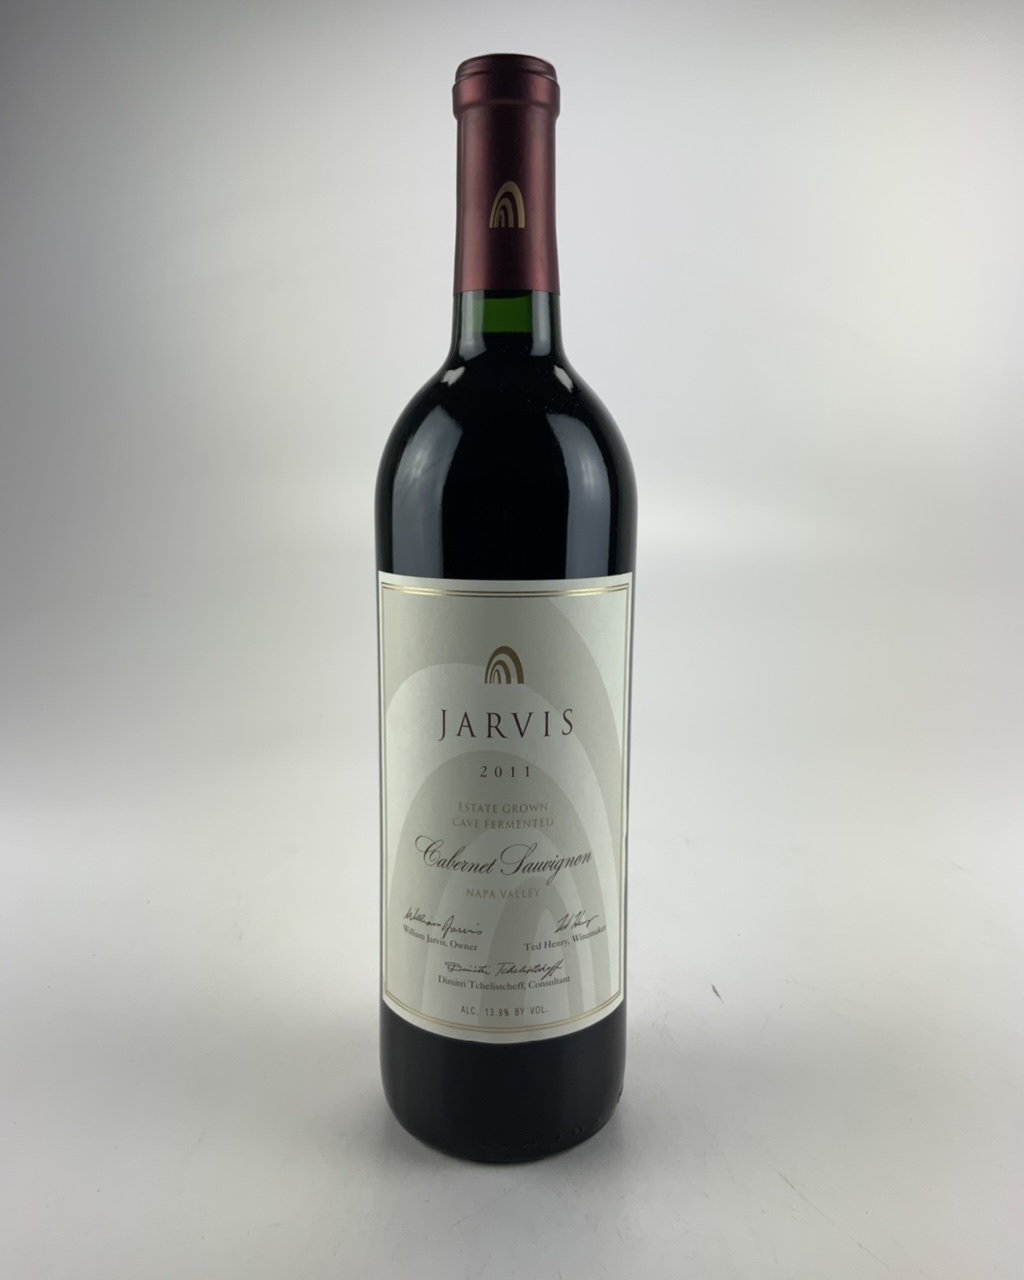 2011 Jarvis Cabernet Sauvignon Napa Valley WE--94